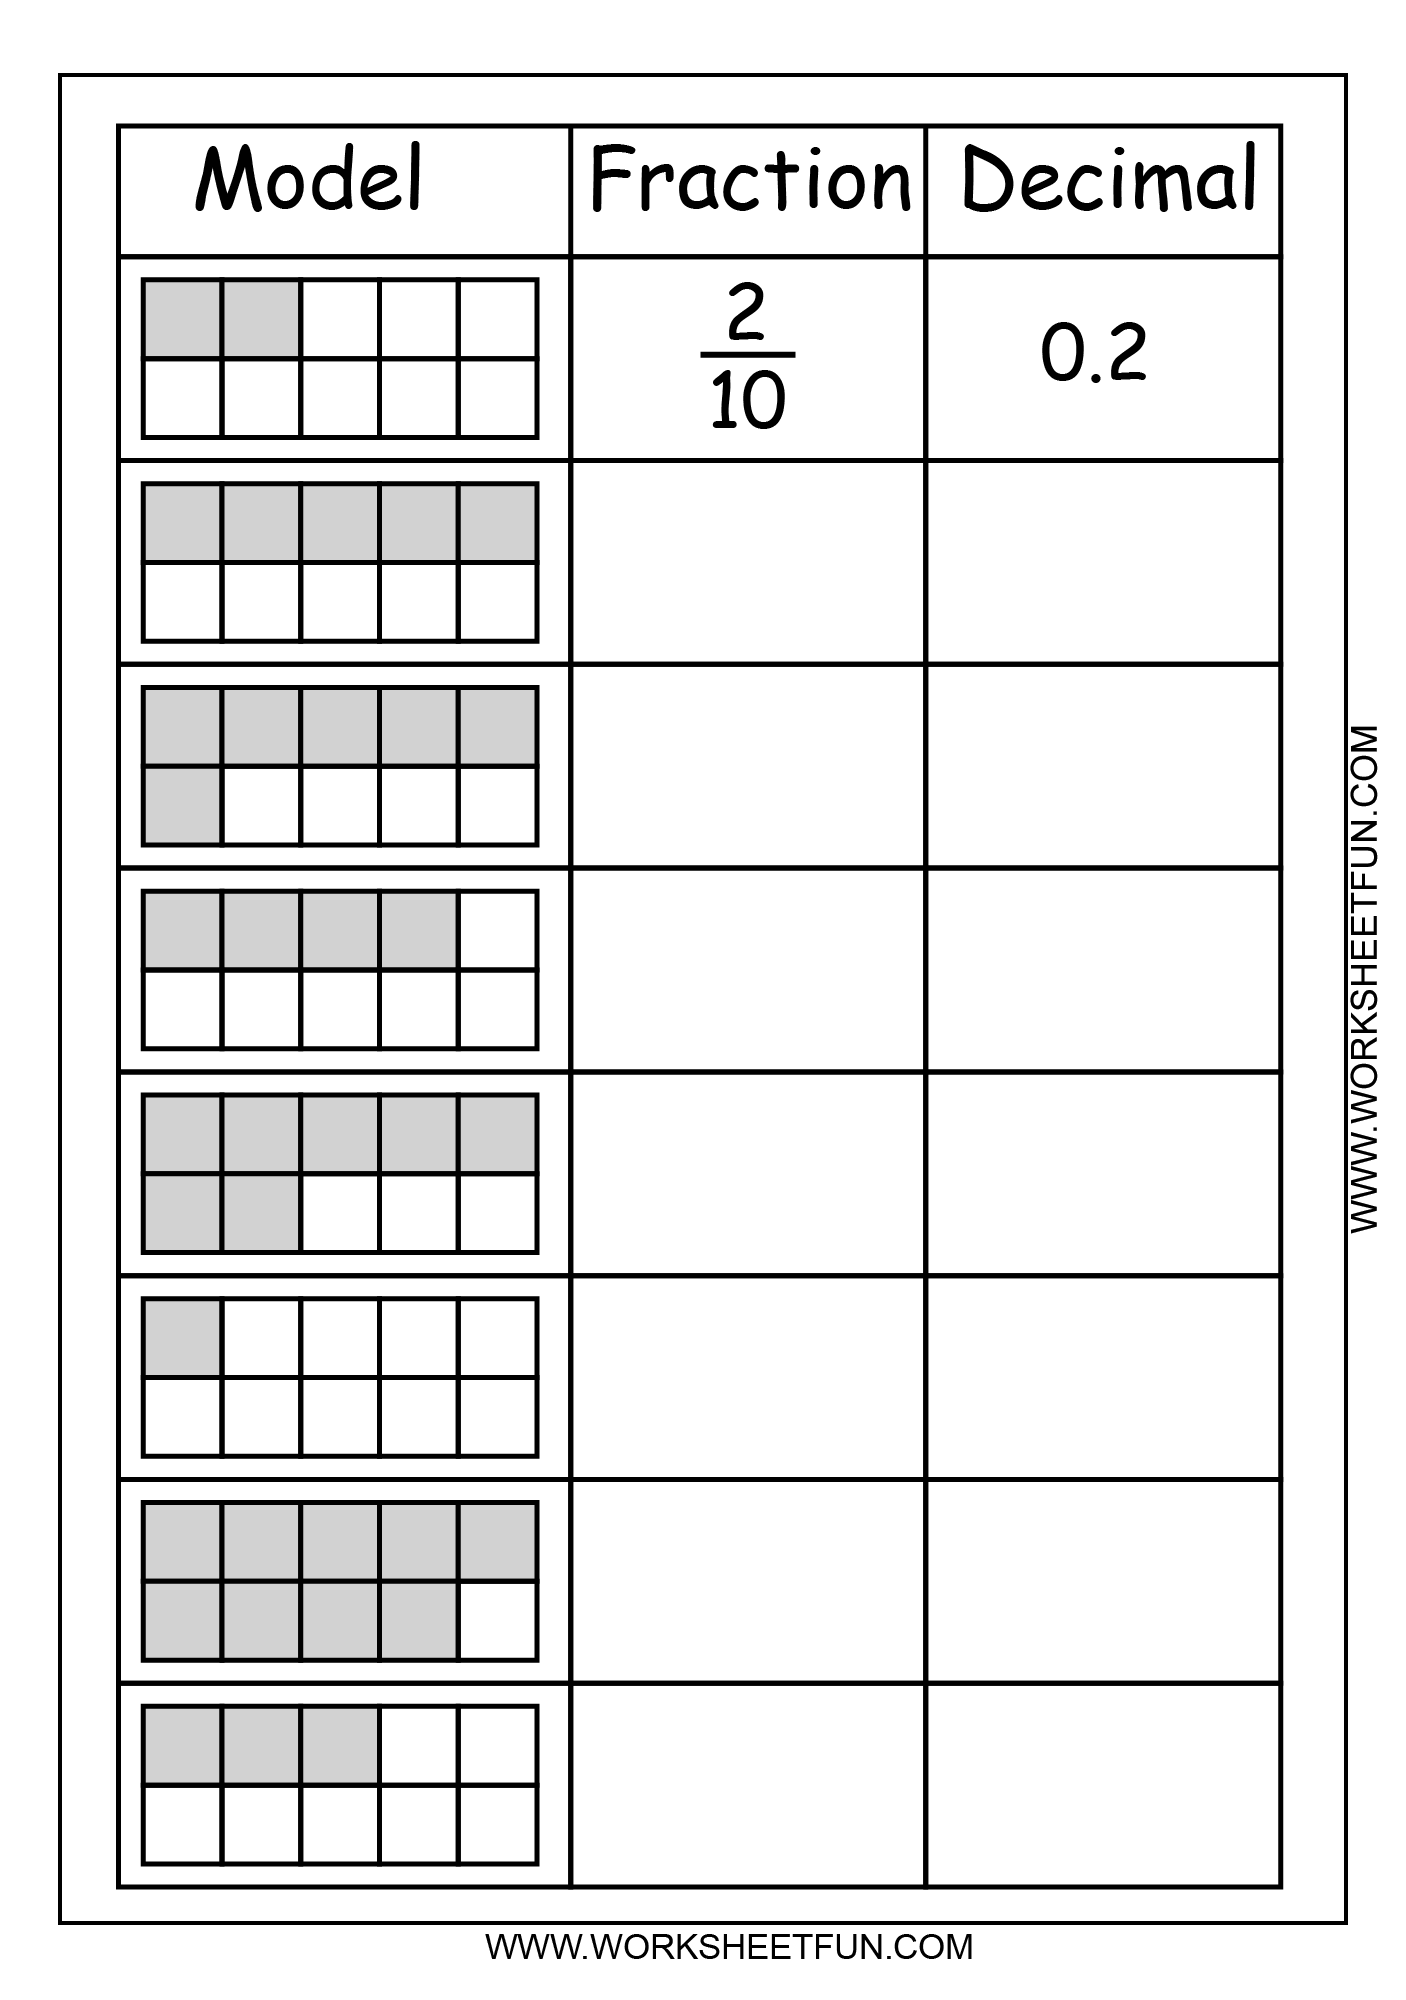 Printables Fraction And Decimal Worksheets 1000 images about decimal worksheets on pinterest models kid and adding decimals